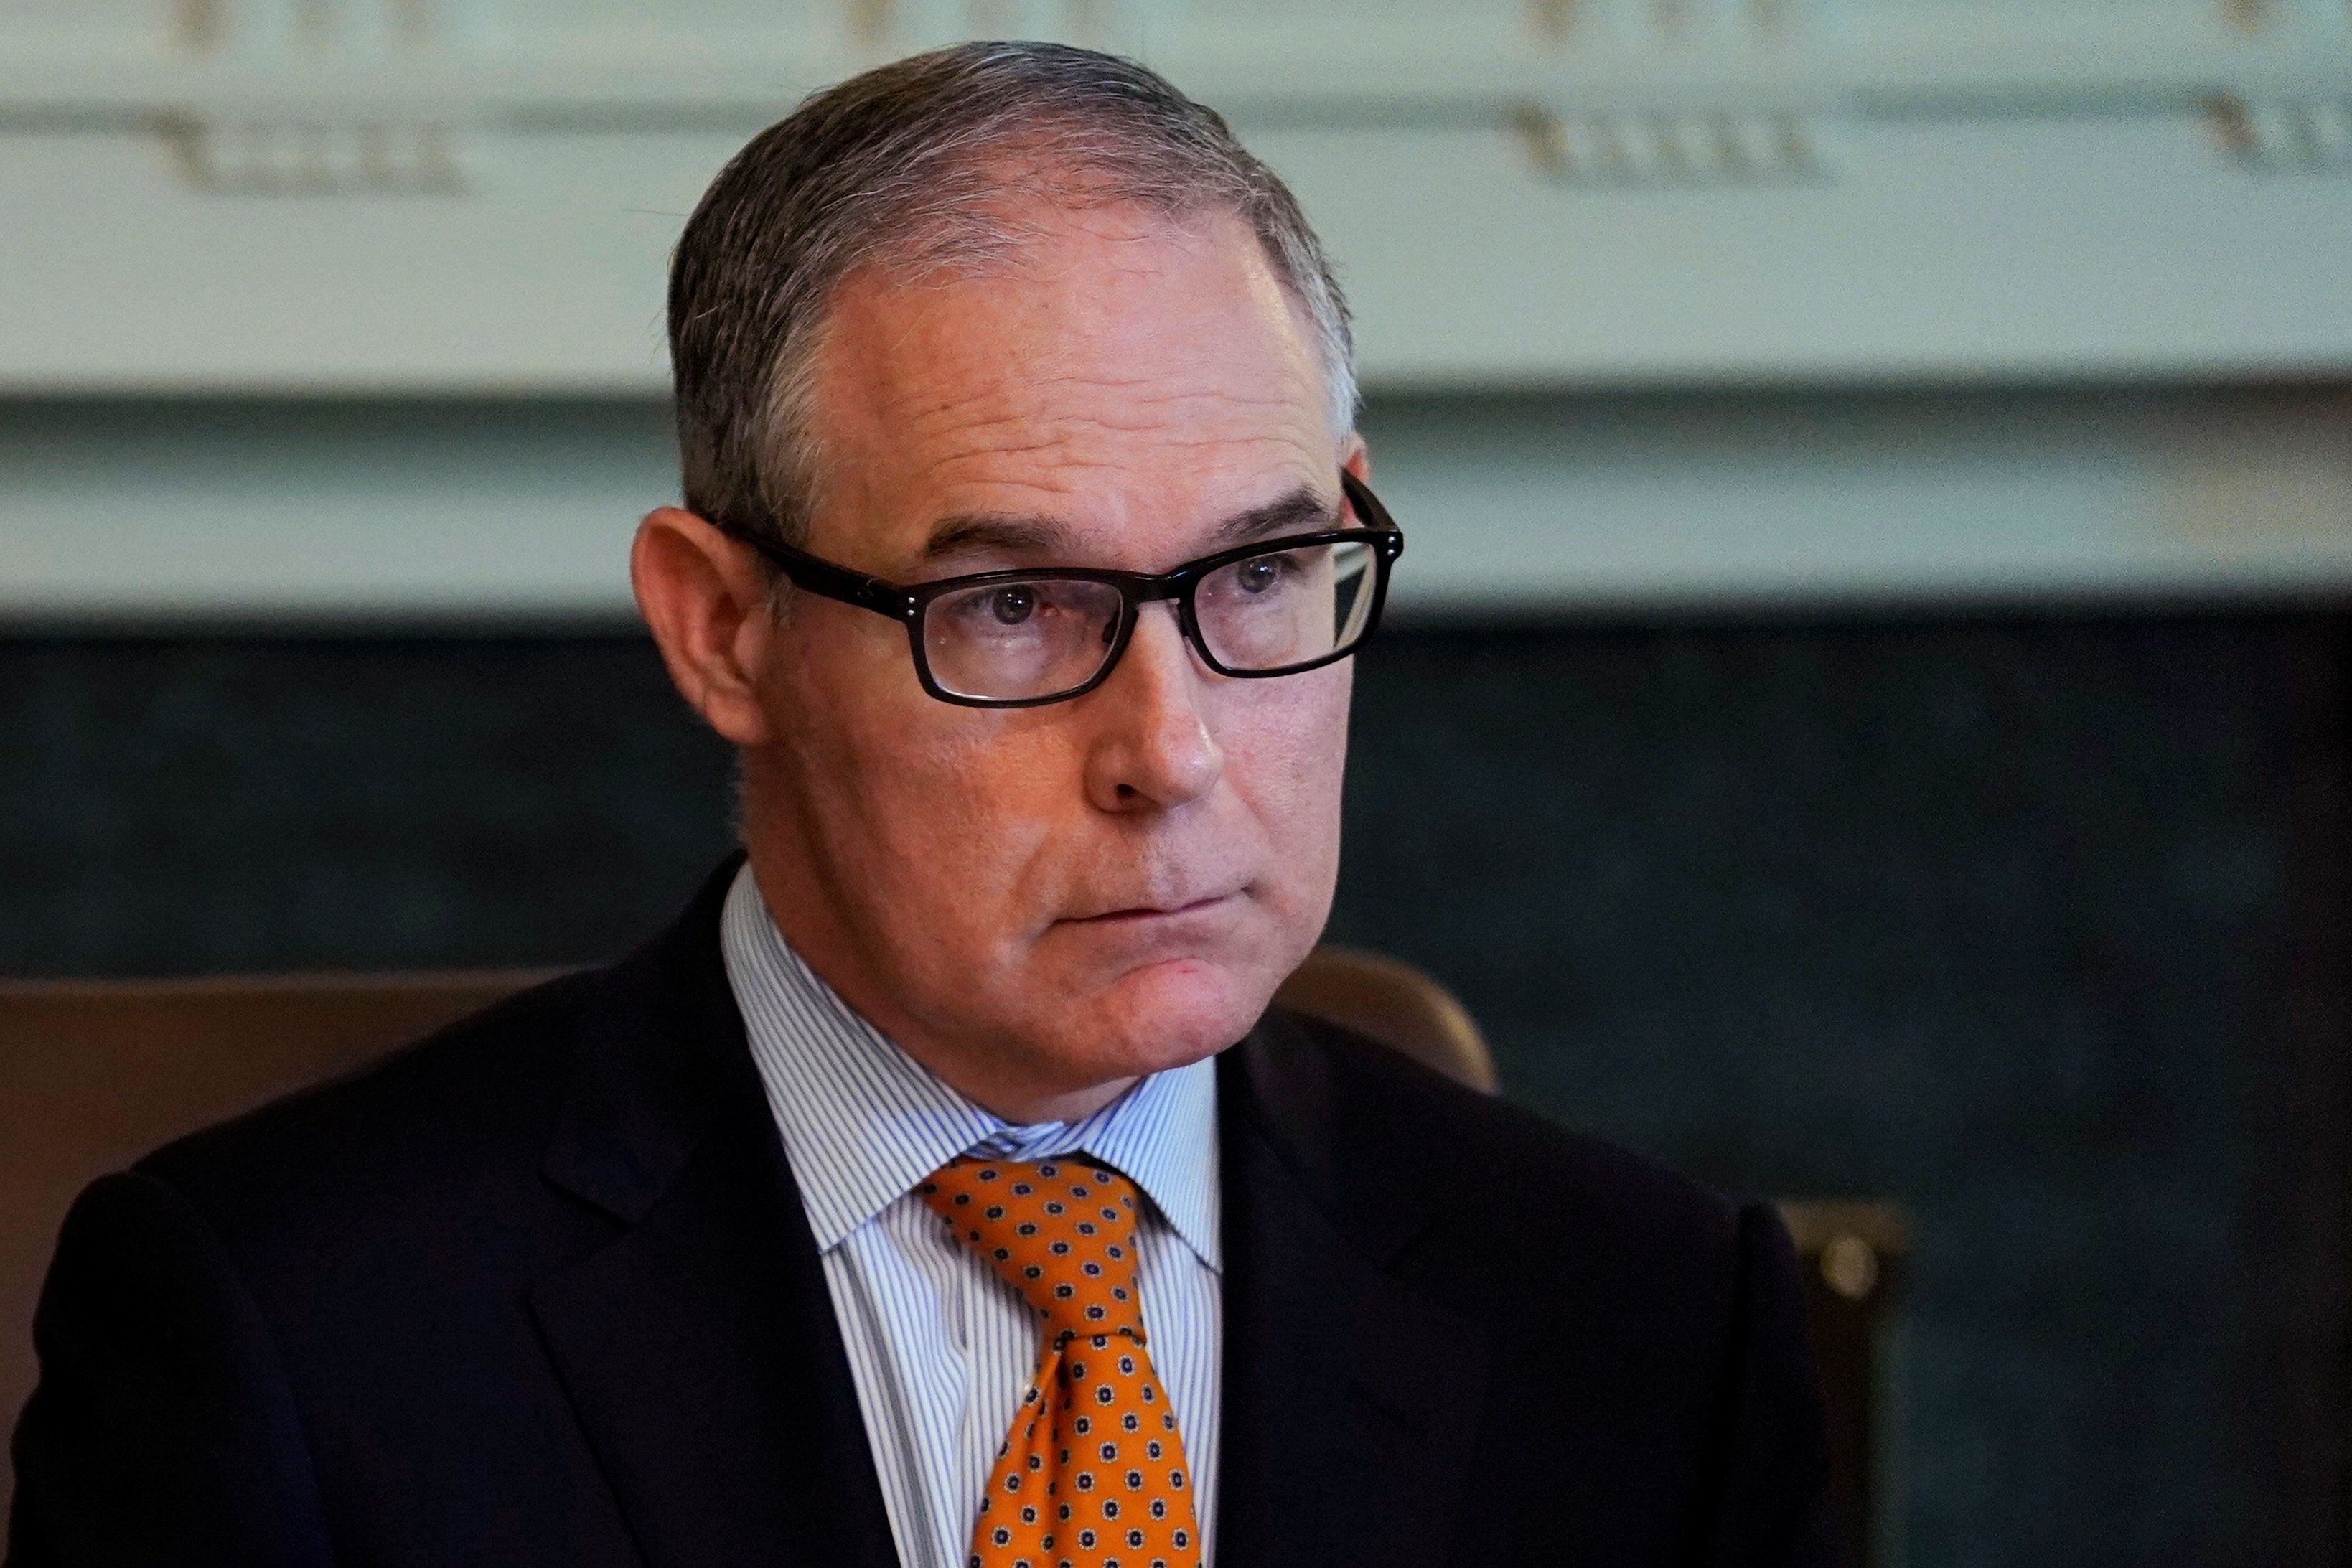 EPA Chief Scott Pruitt reportedly asked staffers to help find his wife, Maryln, a high-paying job.